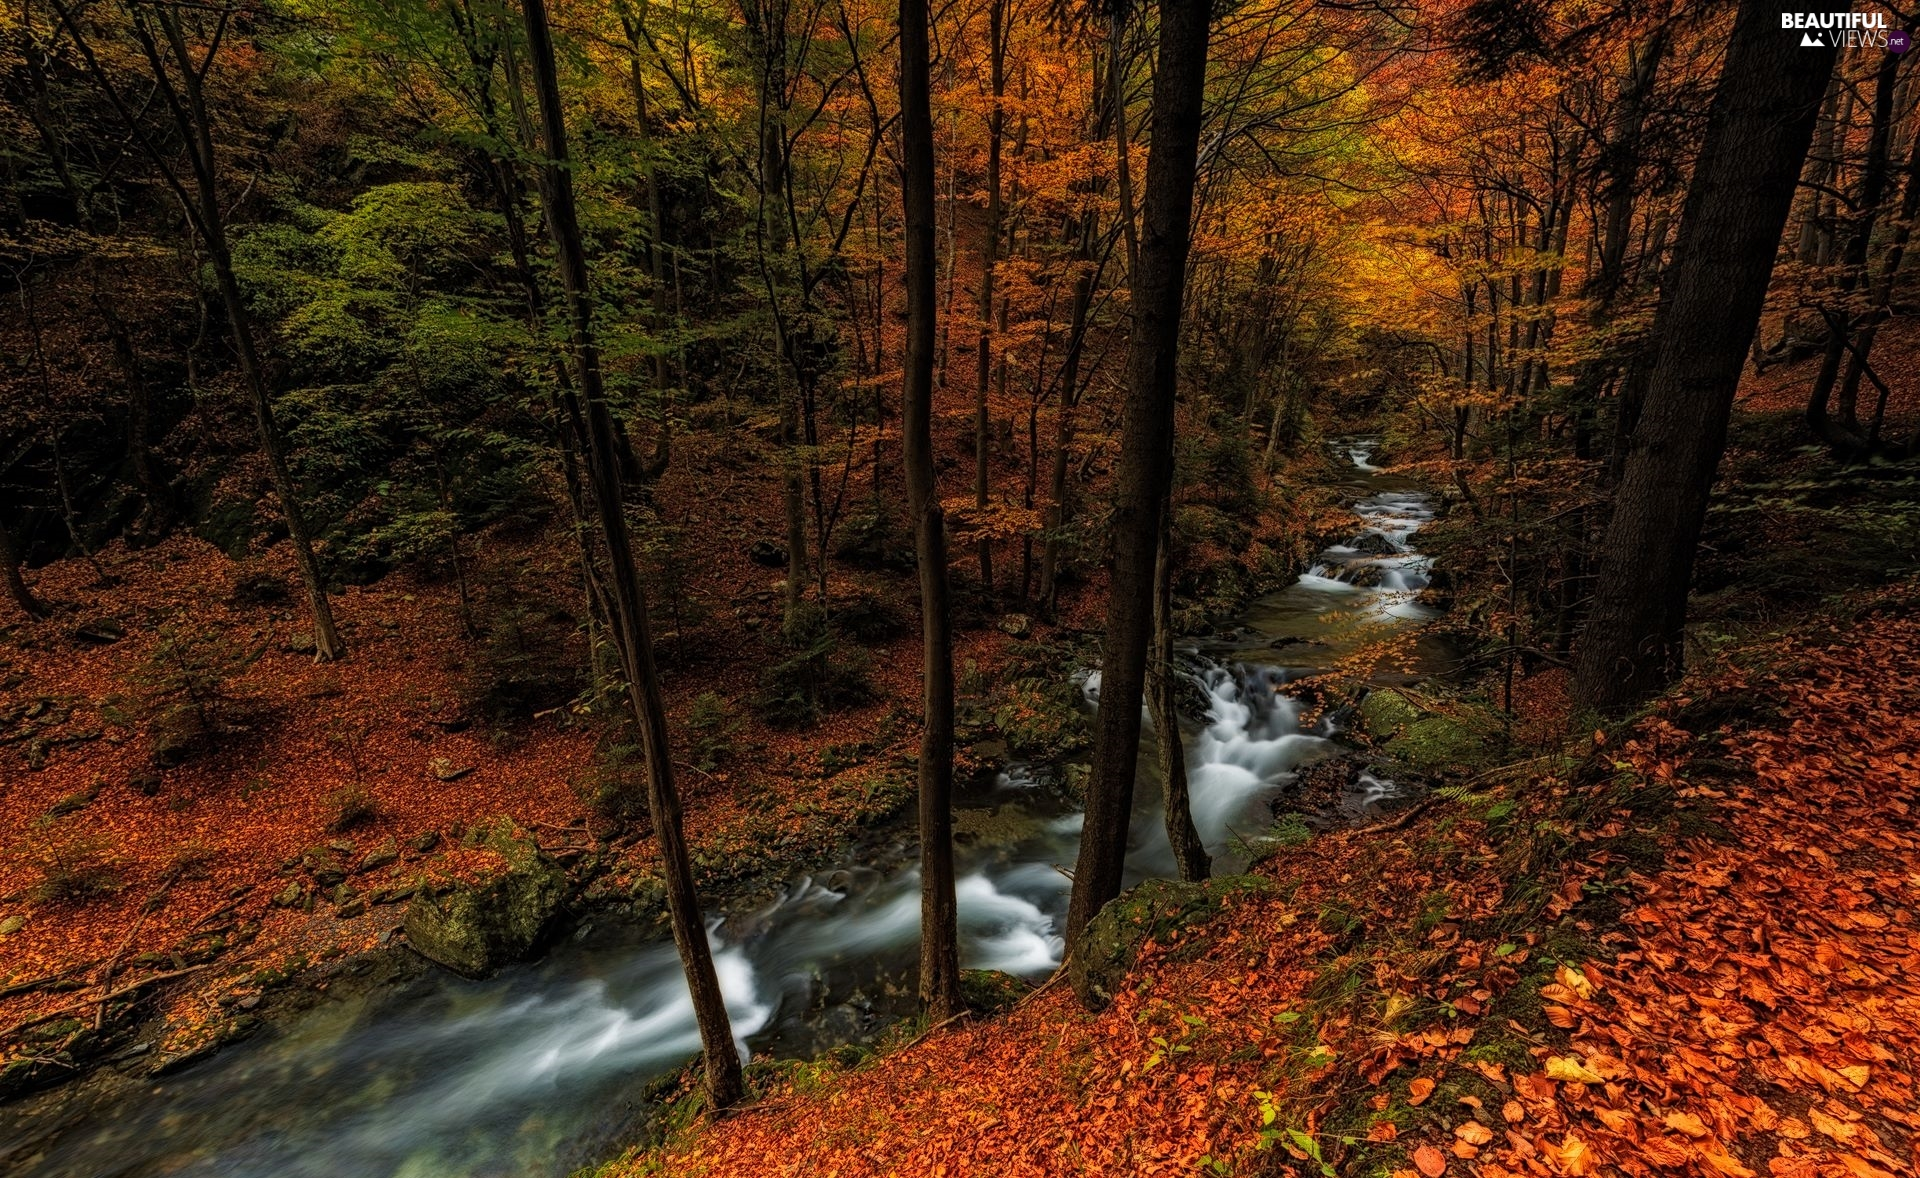 viewes, forest, autumn, Leaf, River, trees